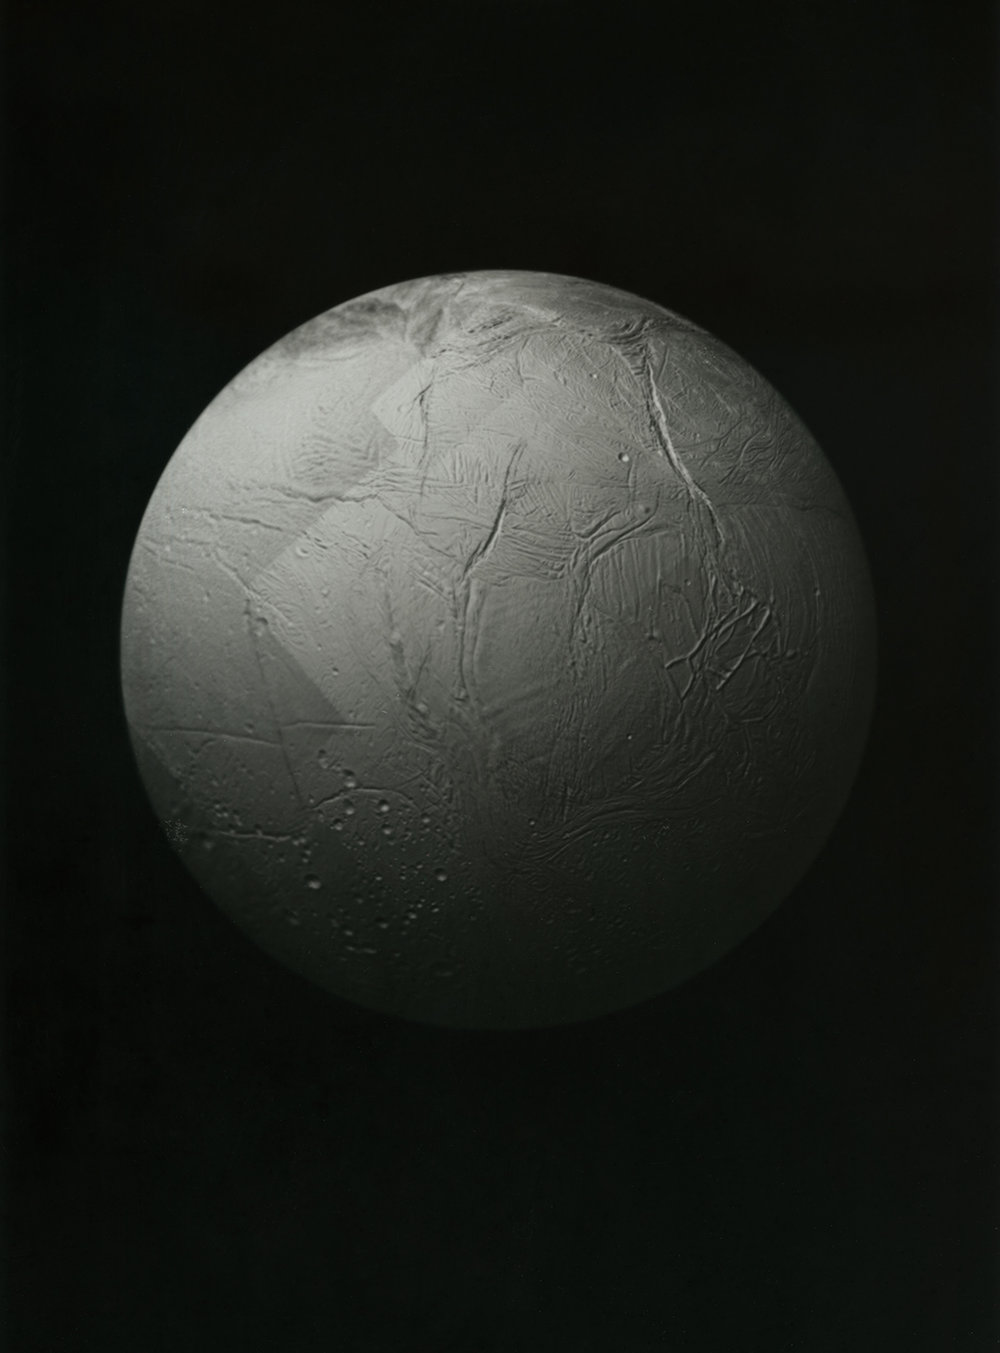 Body 3 - Enceladus (NASA:JPL:ESA:University of Arizona) Digital Version.jpg